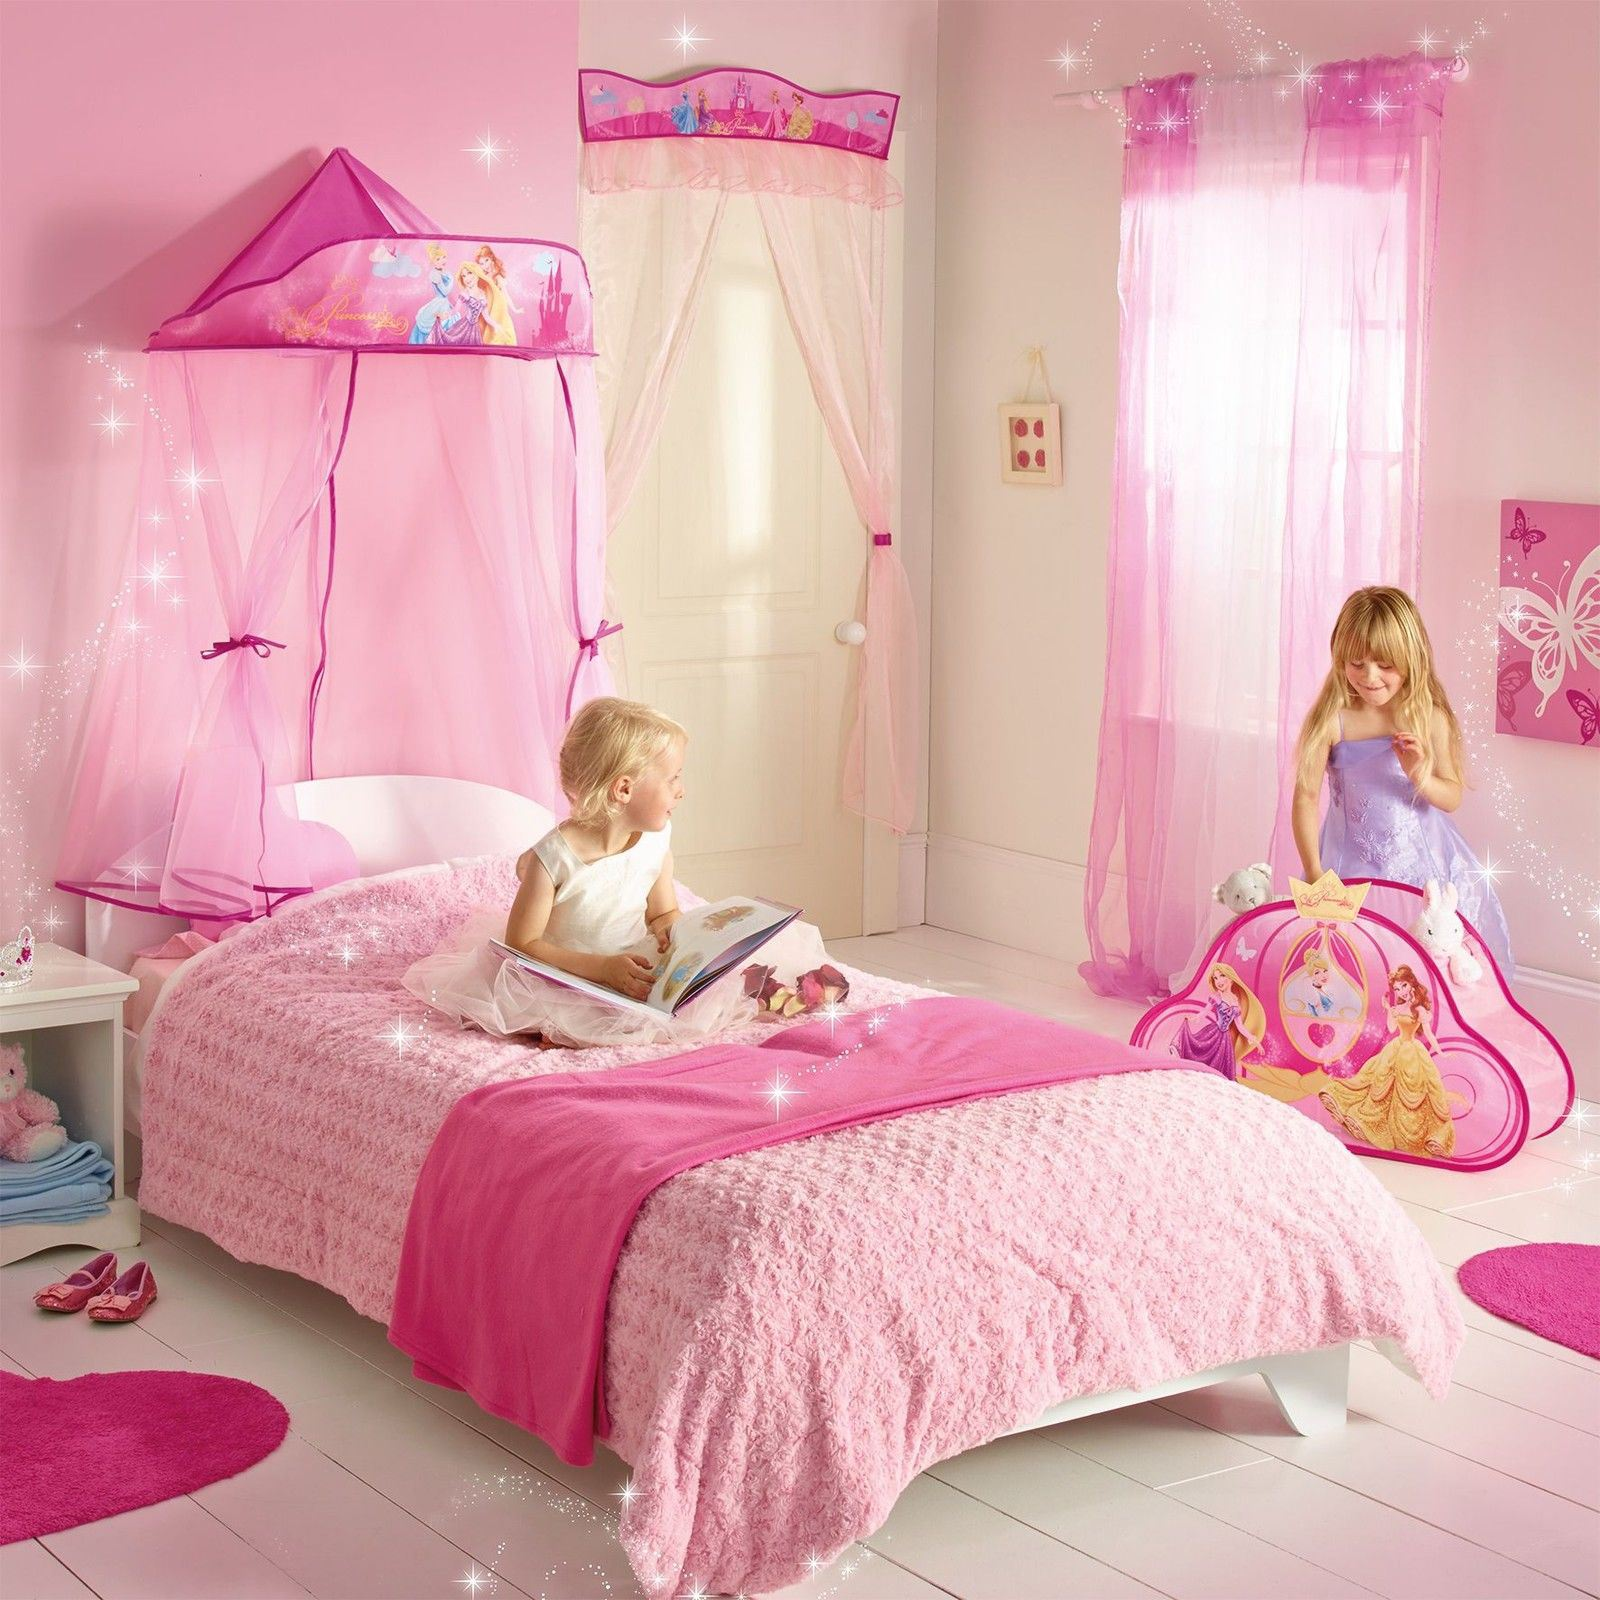 Disney princess hanging bed canopy new girls bedroom decor for Princess bedroom decor